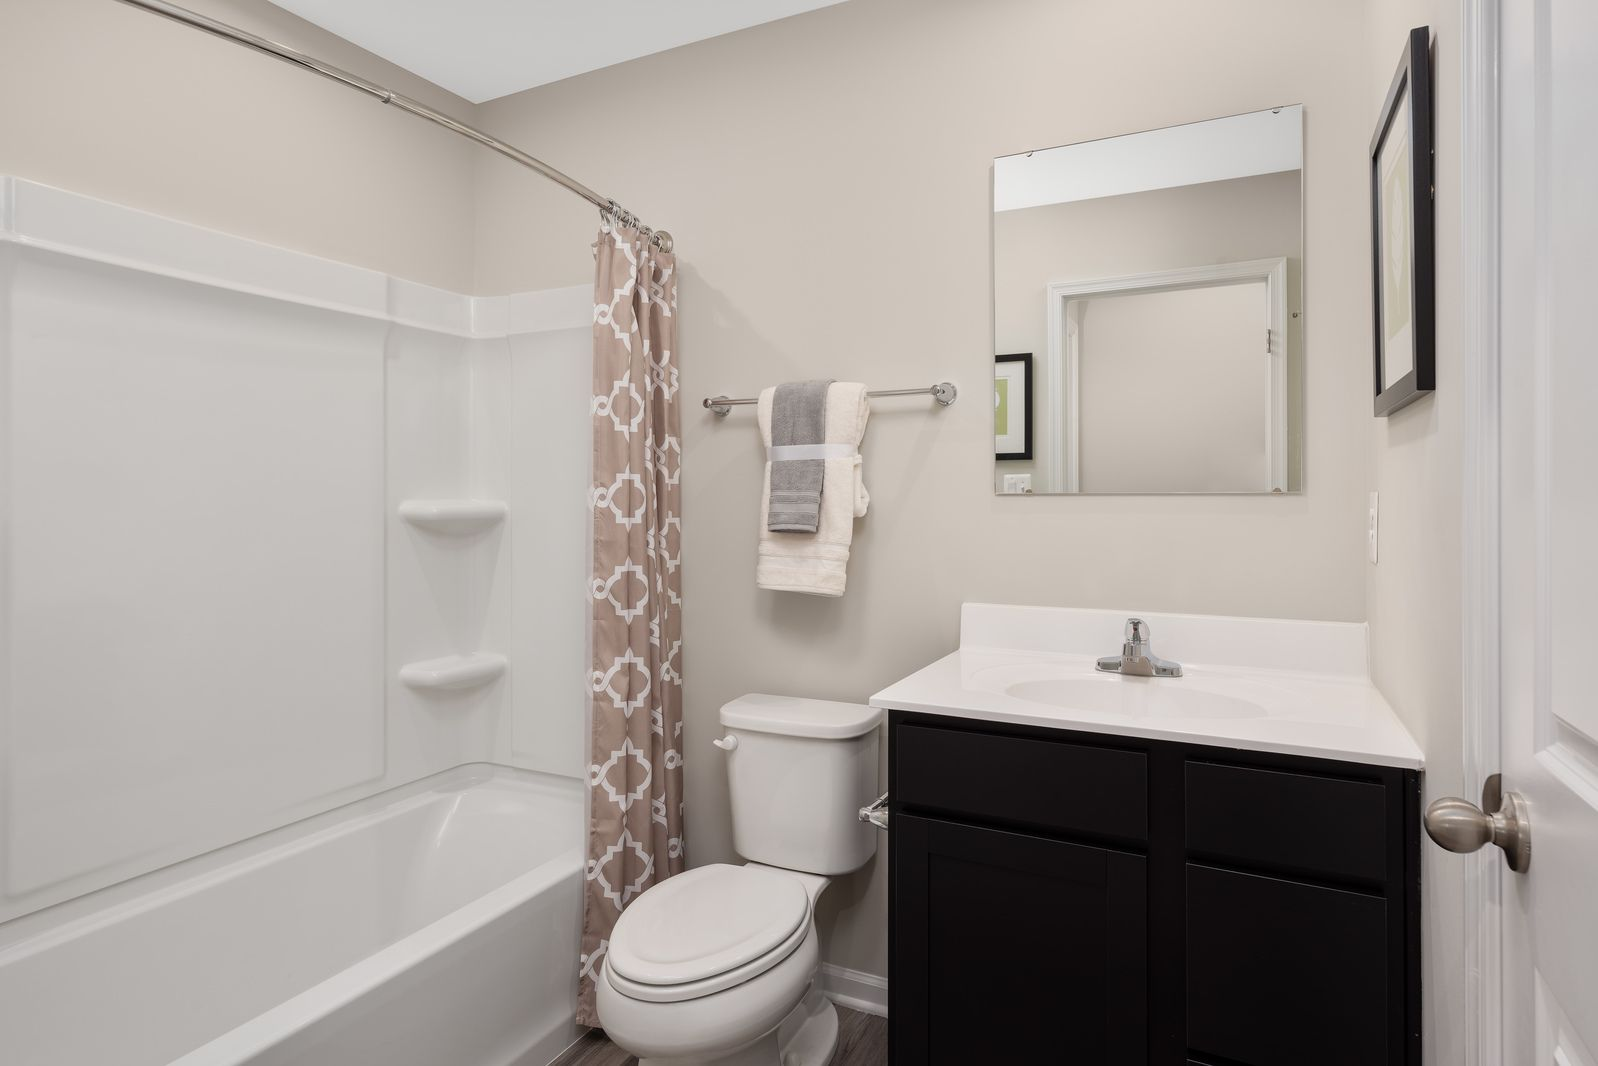 Bathroom featured in the Birch Basement By Ryan Homes in Washington, WV